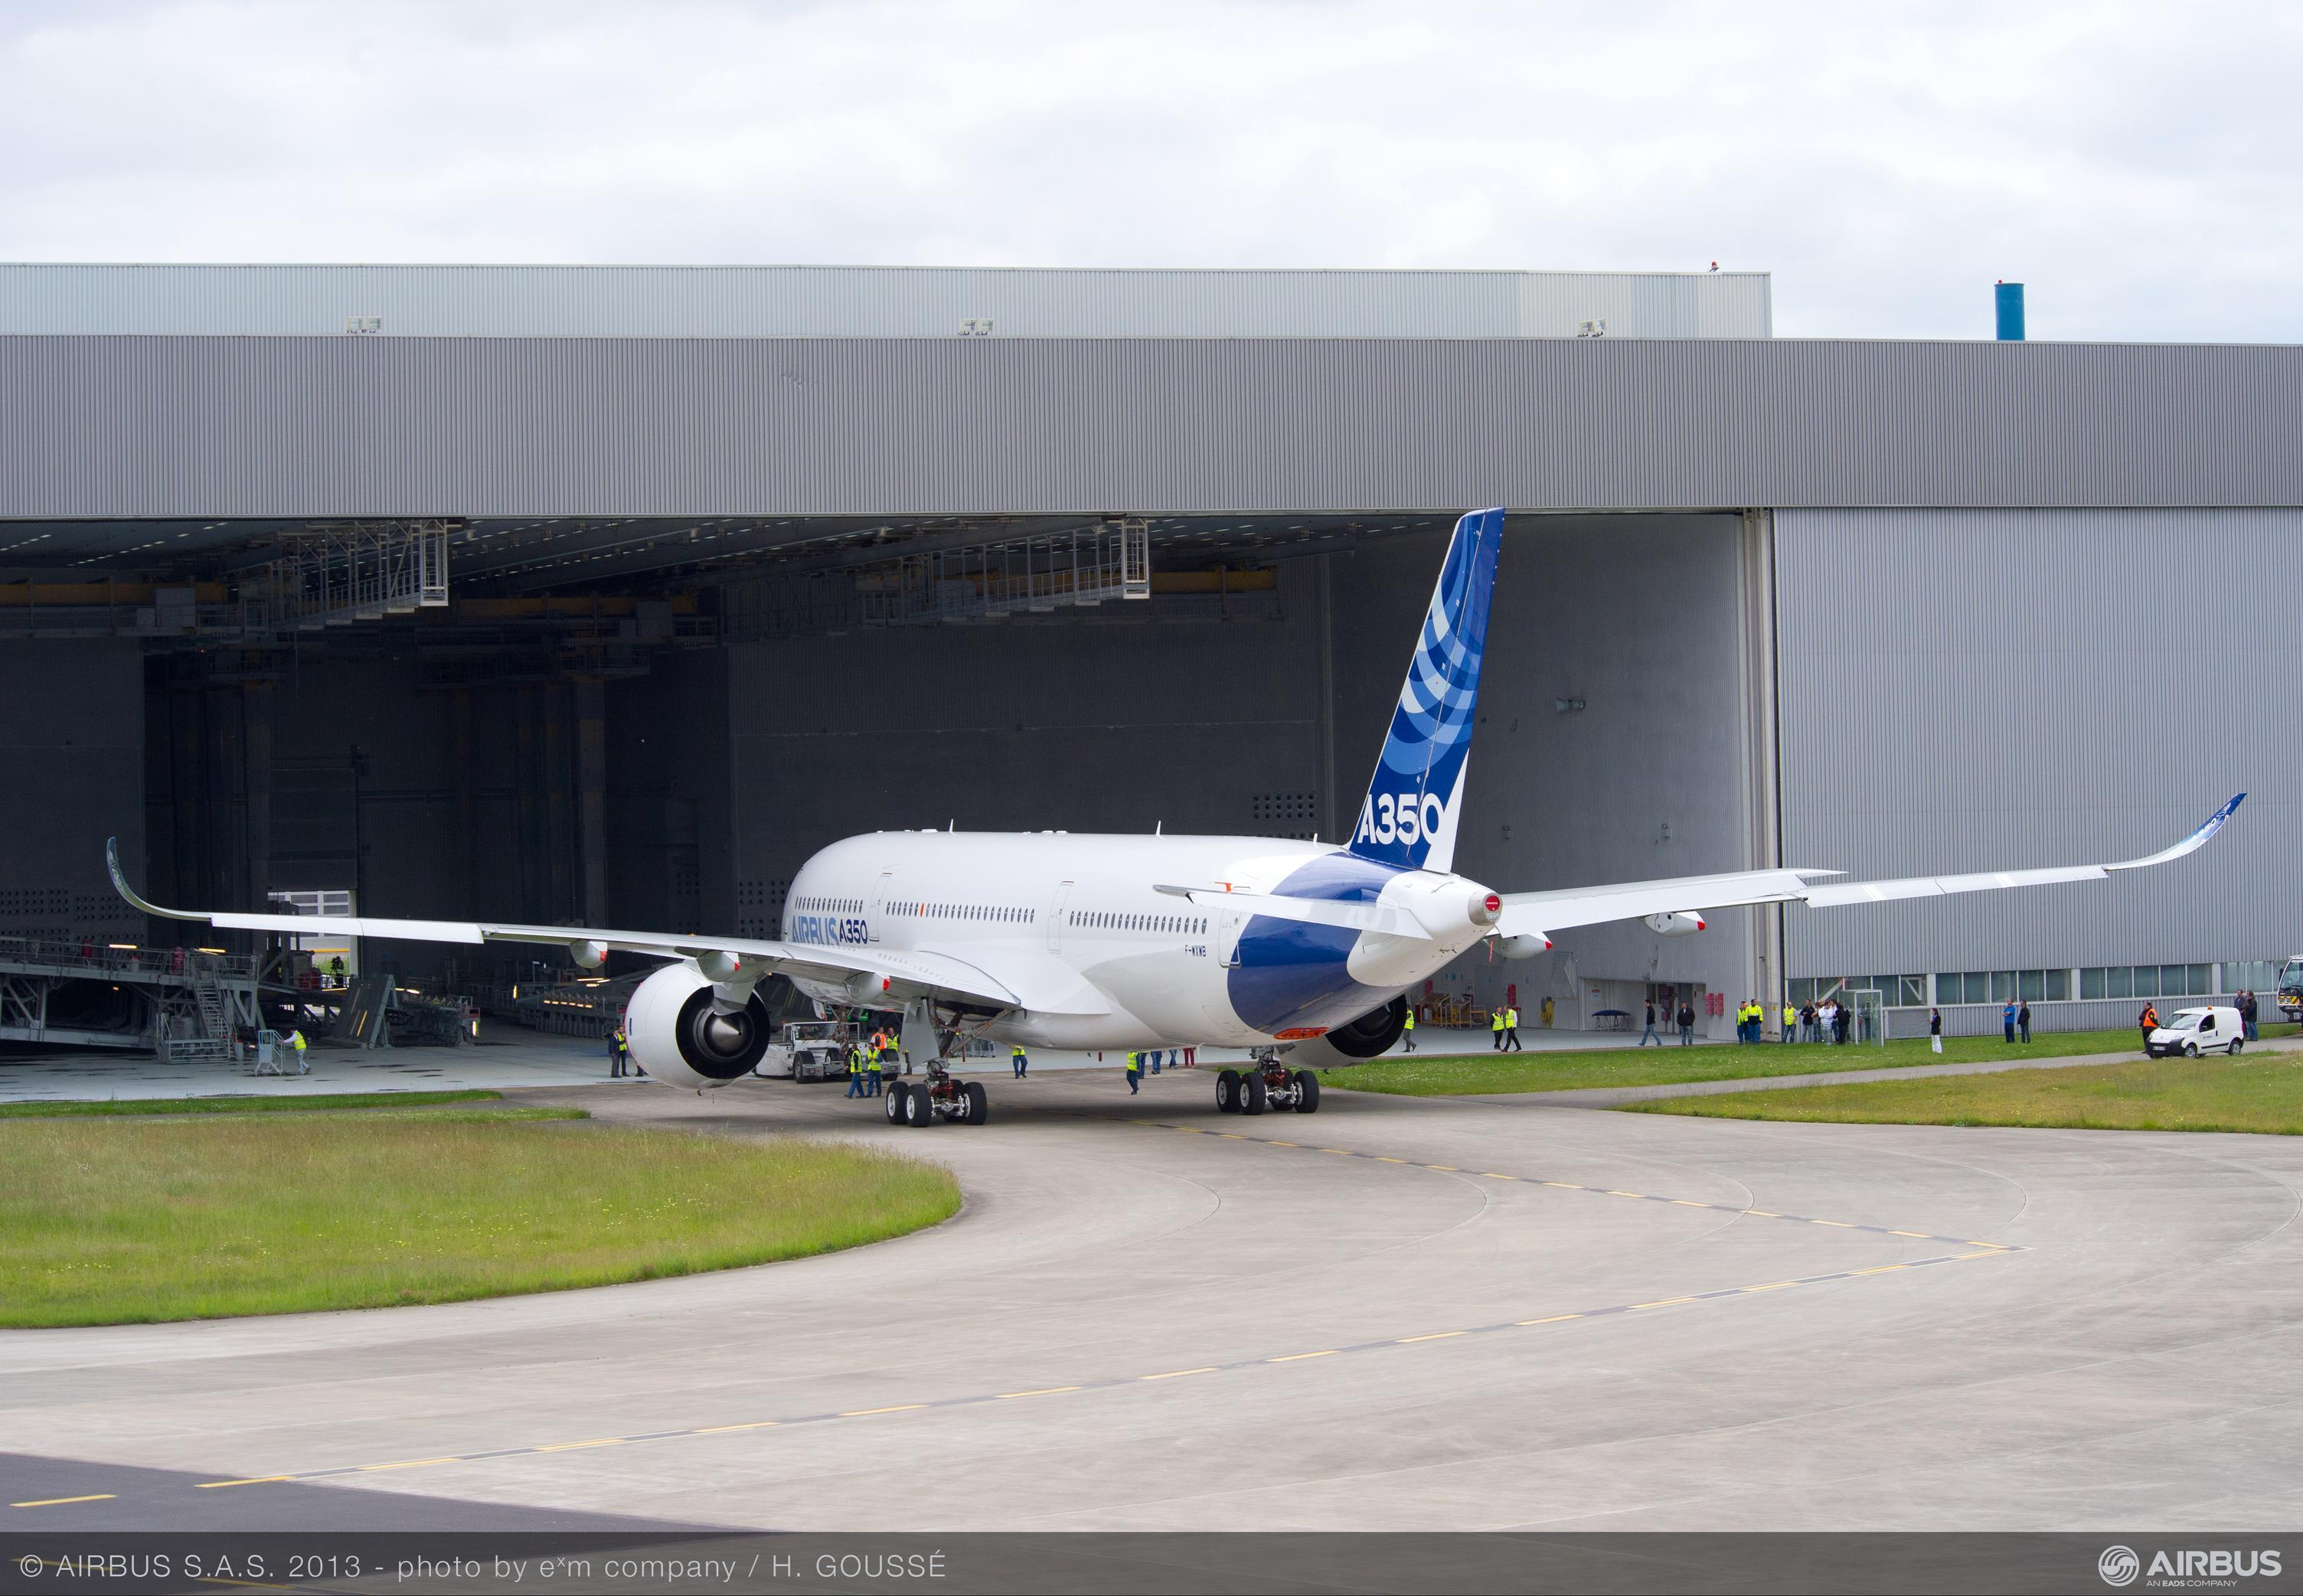 A350 Being Pushed Out Of Its Hangar